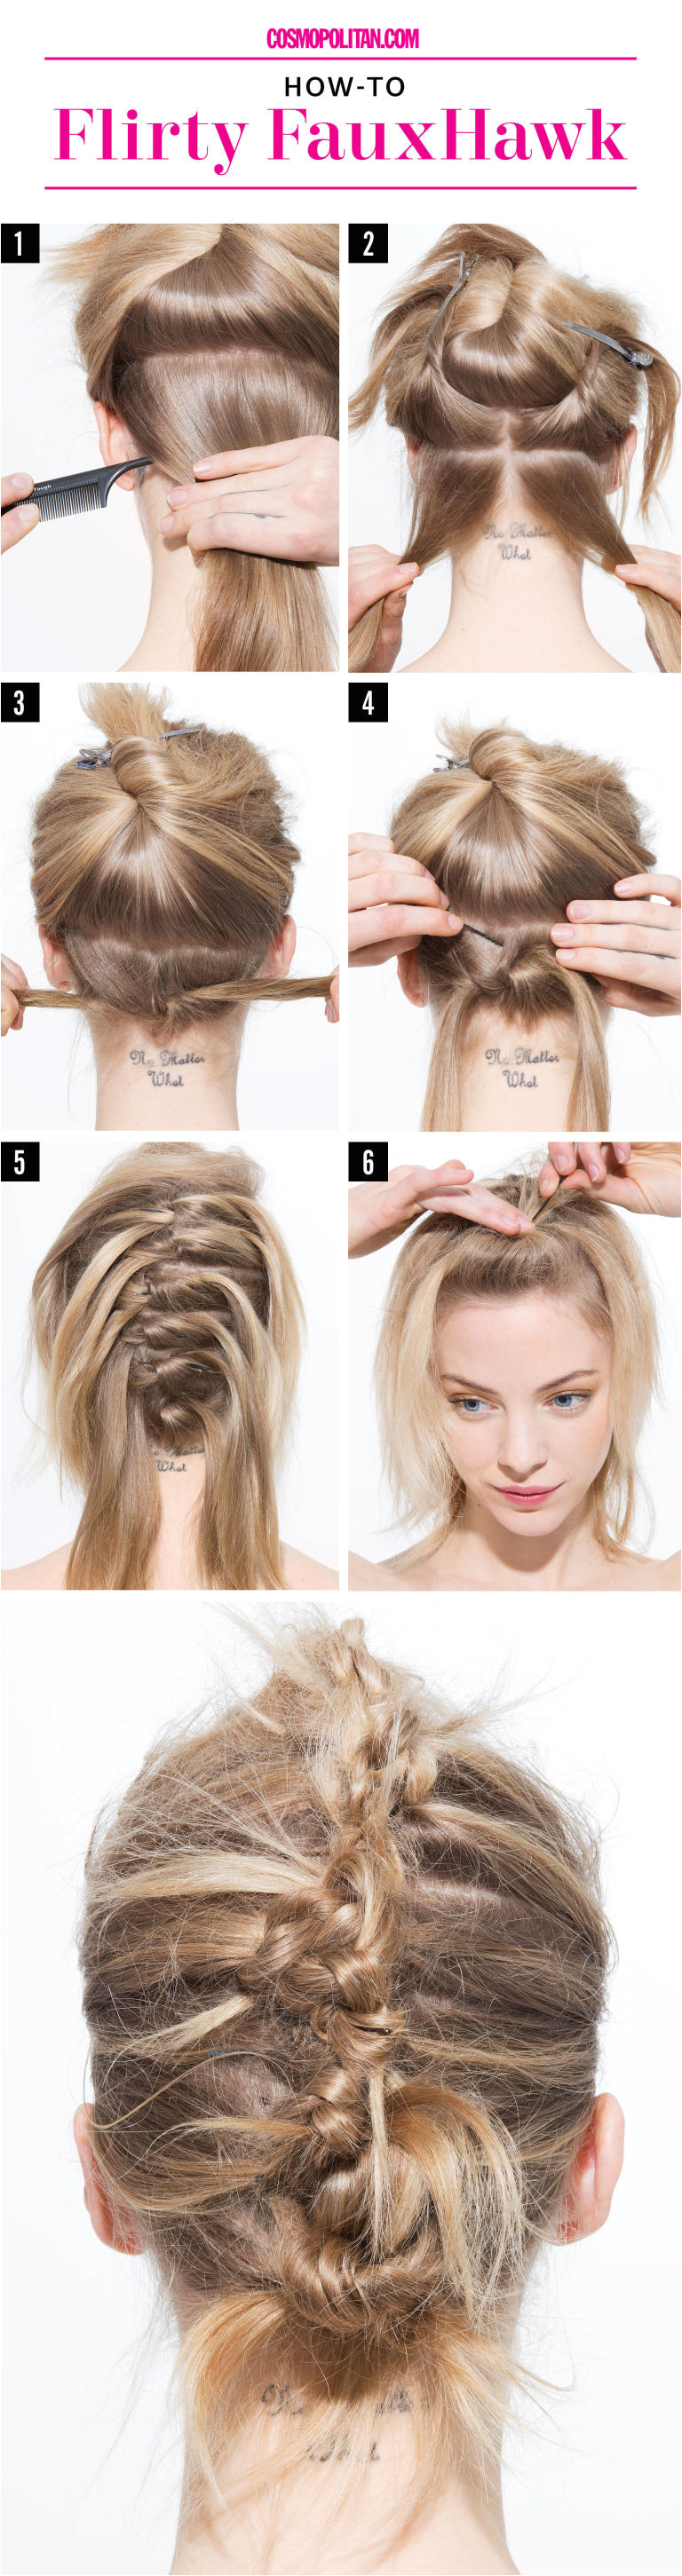 Formal Hairstyles Diy 4 Last Minute Diy evening Hairstyles that Will Leave You Looking Hot